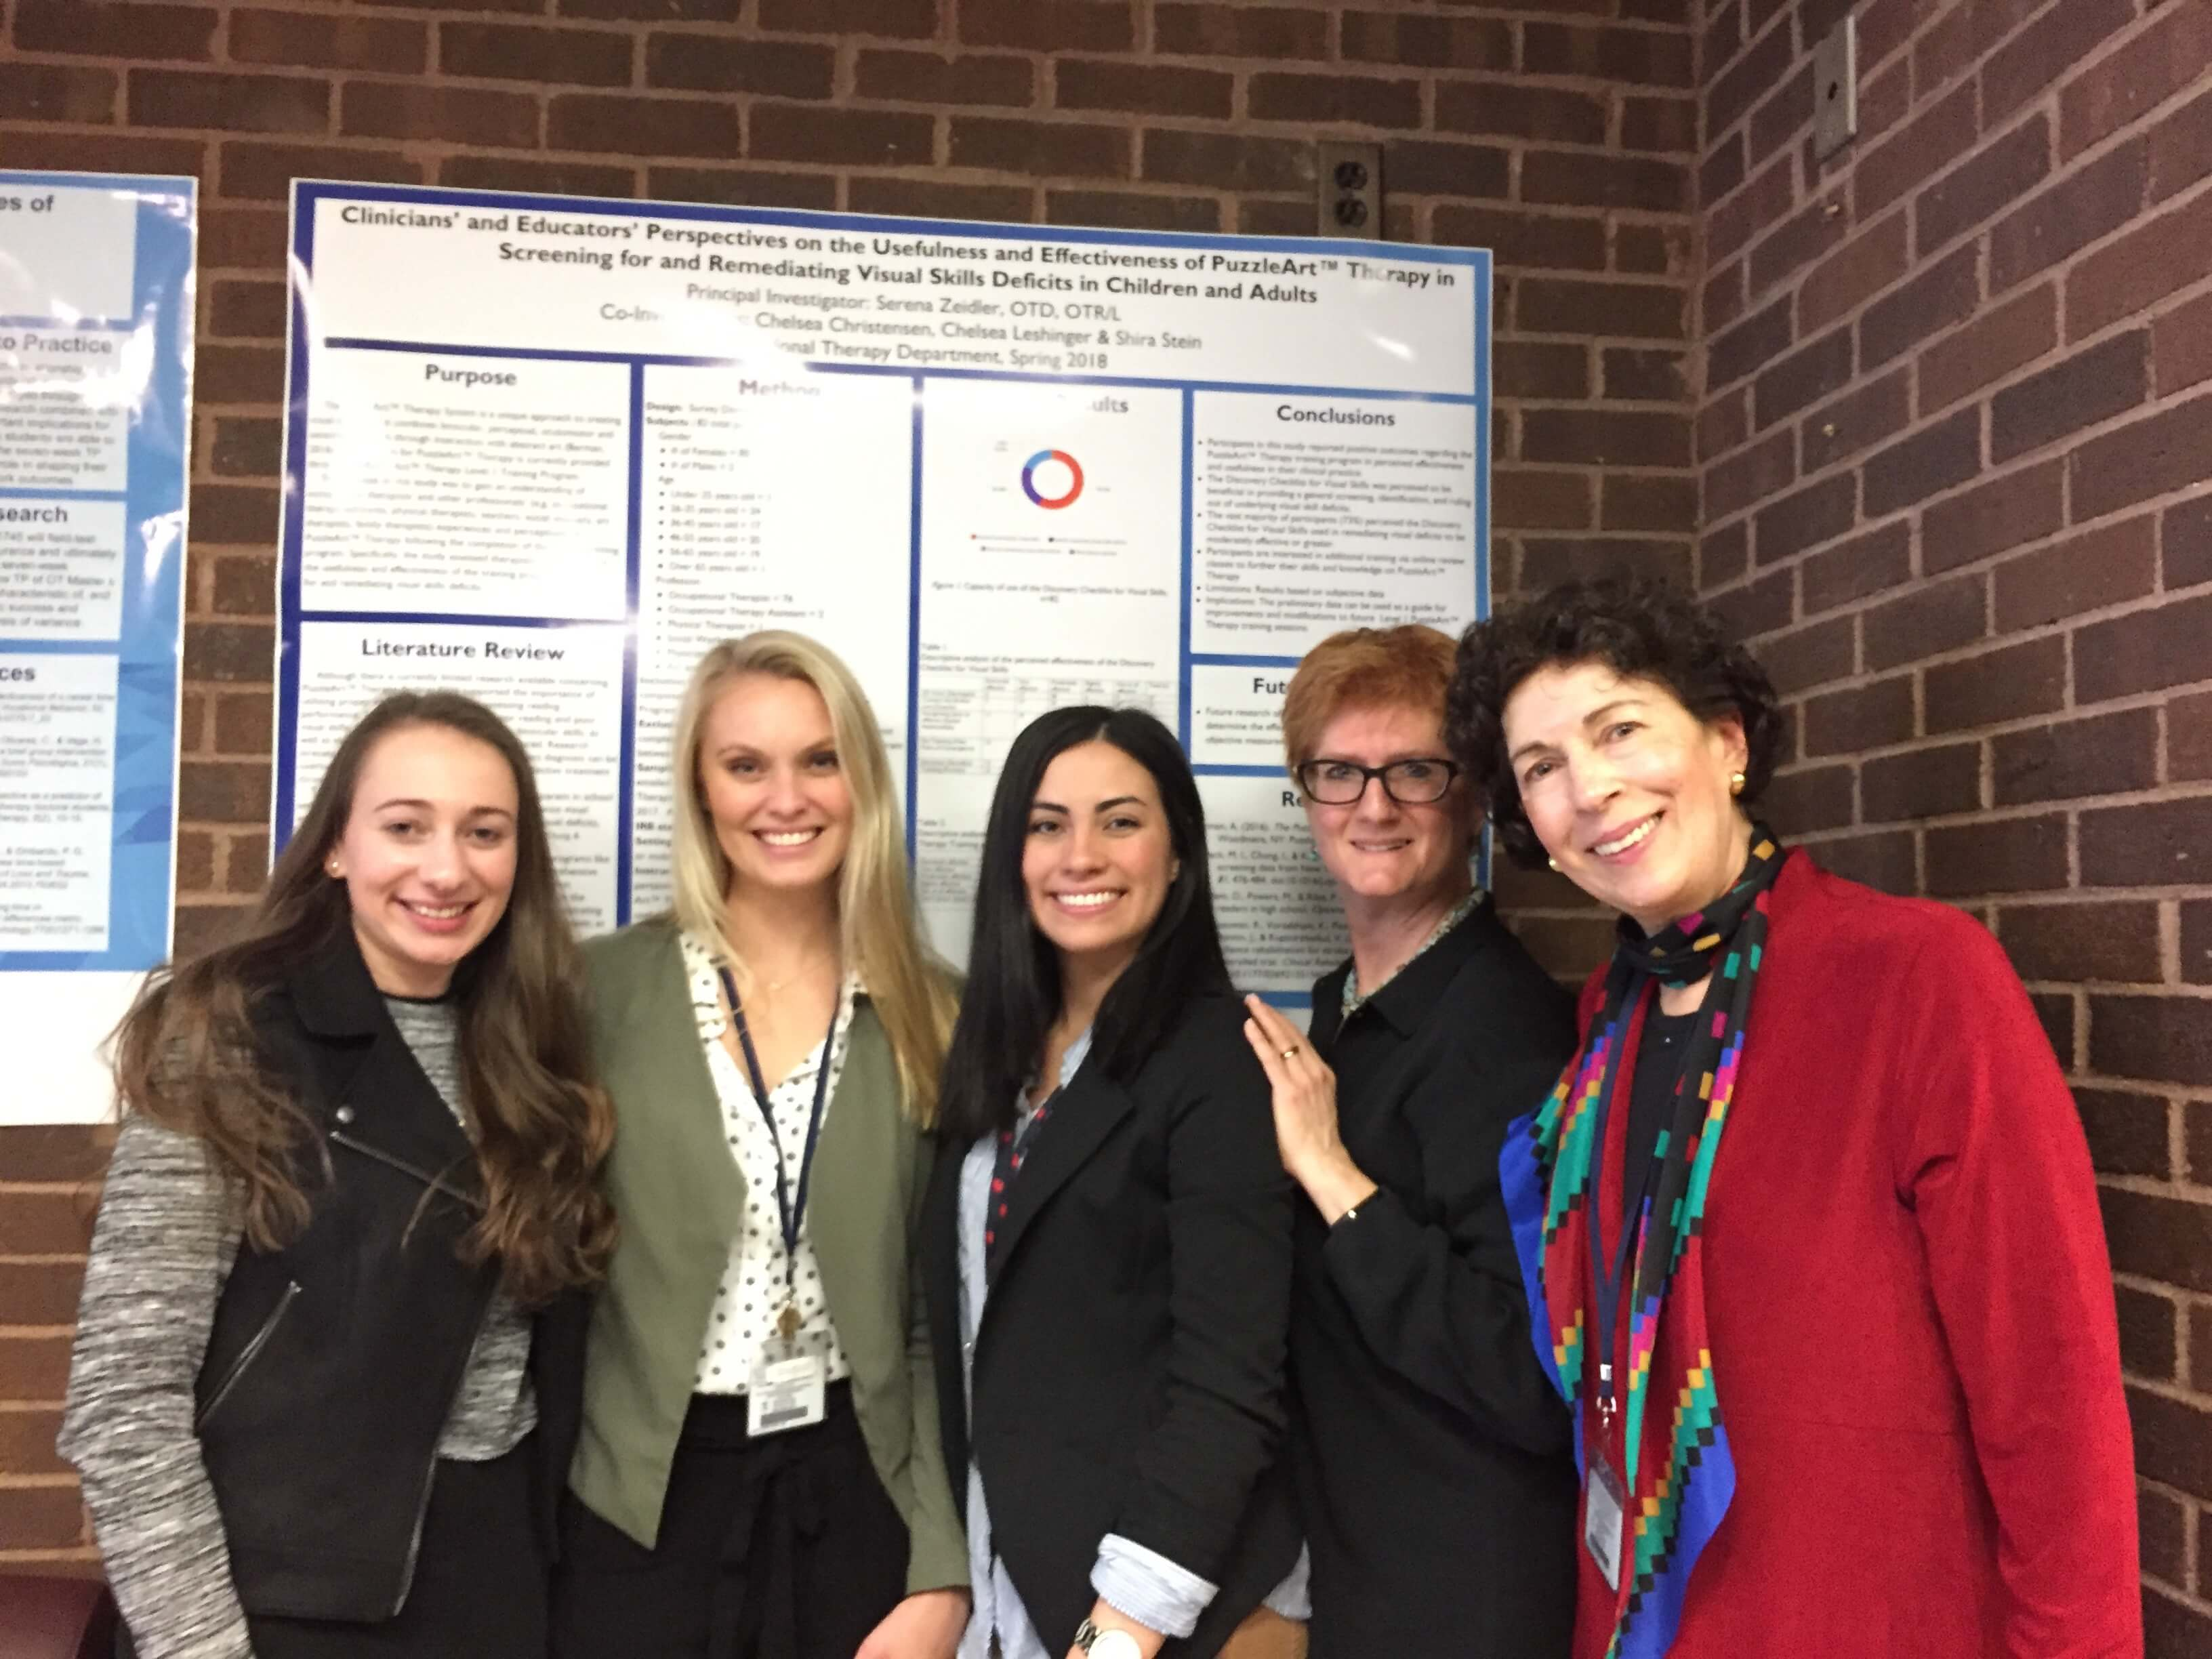 Students at the School of Health Sciences Occupational Therapy program delivered their final presentations in May. Above, students worked with SHS OT Professor Serena Zeidler (far right) to examine the efficacy of a new therapy tool.